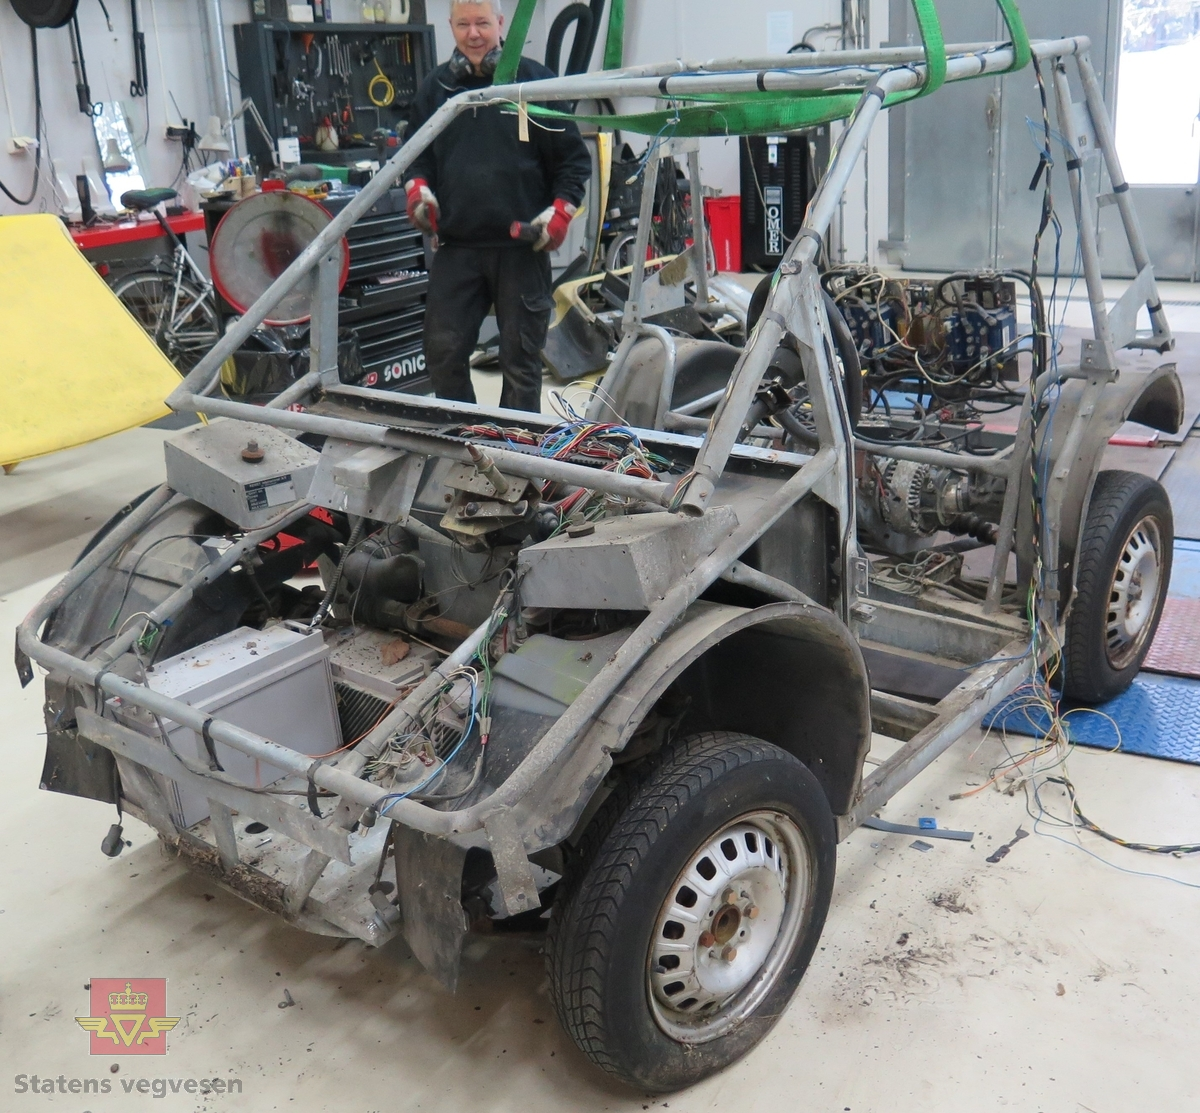 Prototype med to motorer. Rullende chassis.